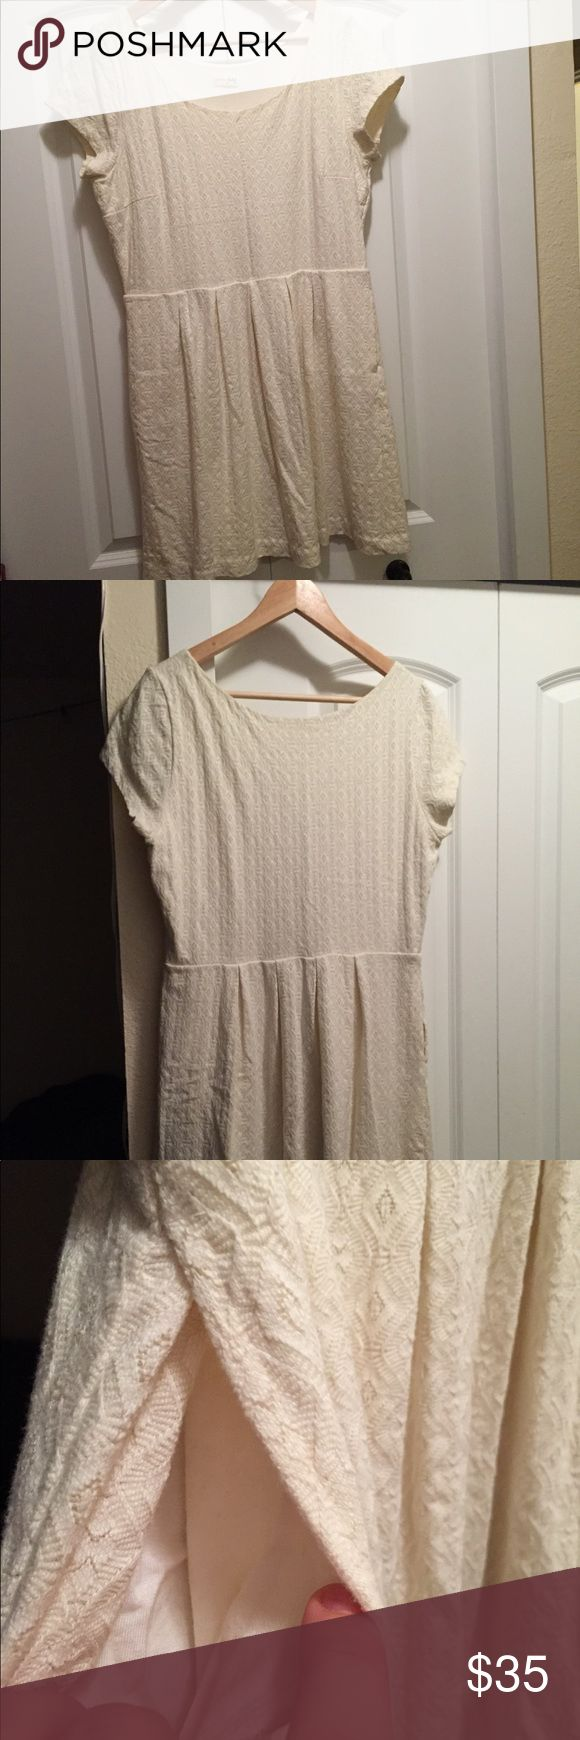 "Maison Jules Cream Cap Sleeve A-Line Dress Like new, worn only once. Beautiful texture, side pockets, flattering fit.  39"" total width at base of sleeves, 35"" waist 35"" long from shoulder Maison Jules Dresses"